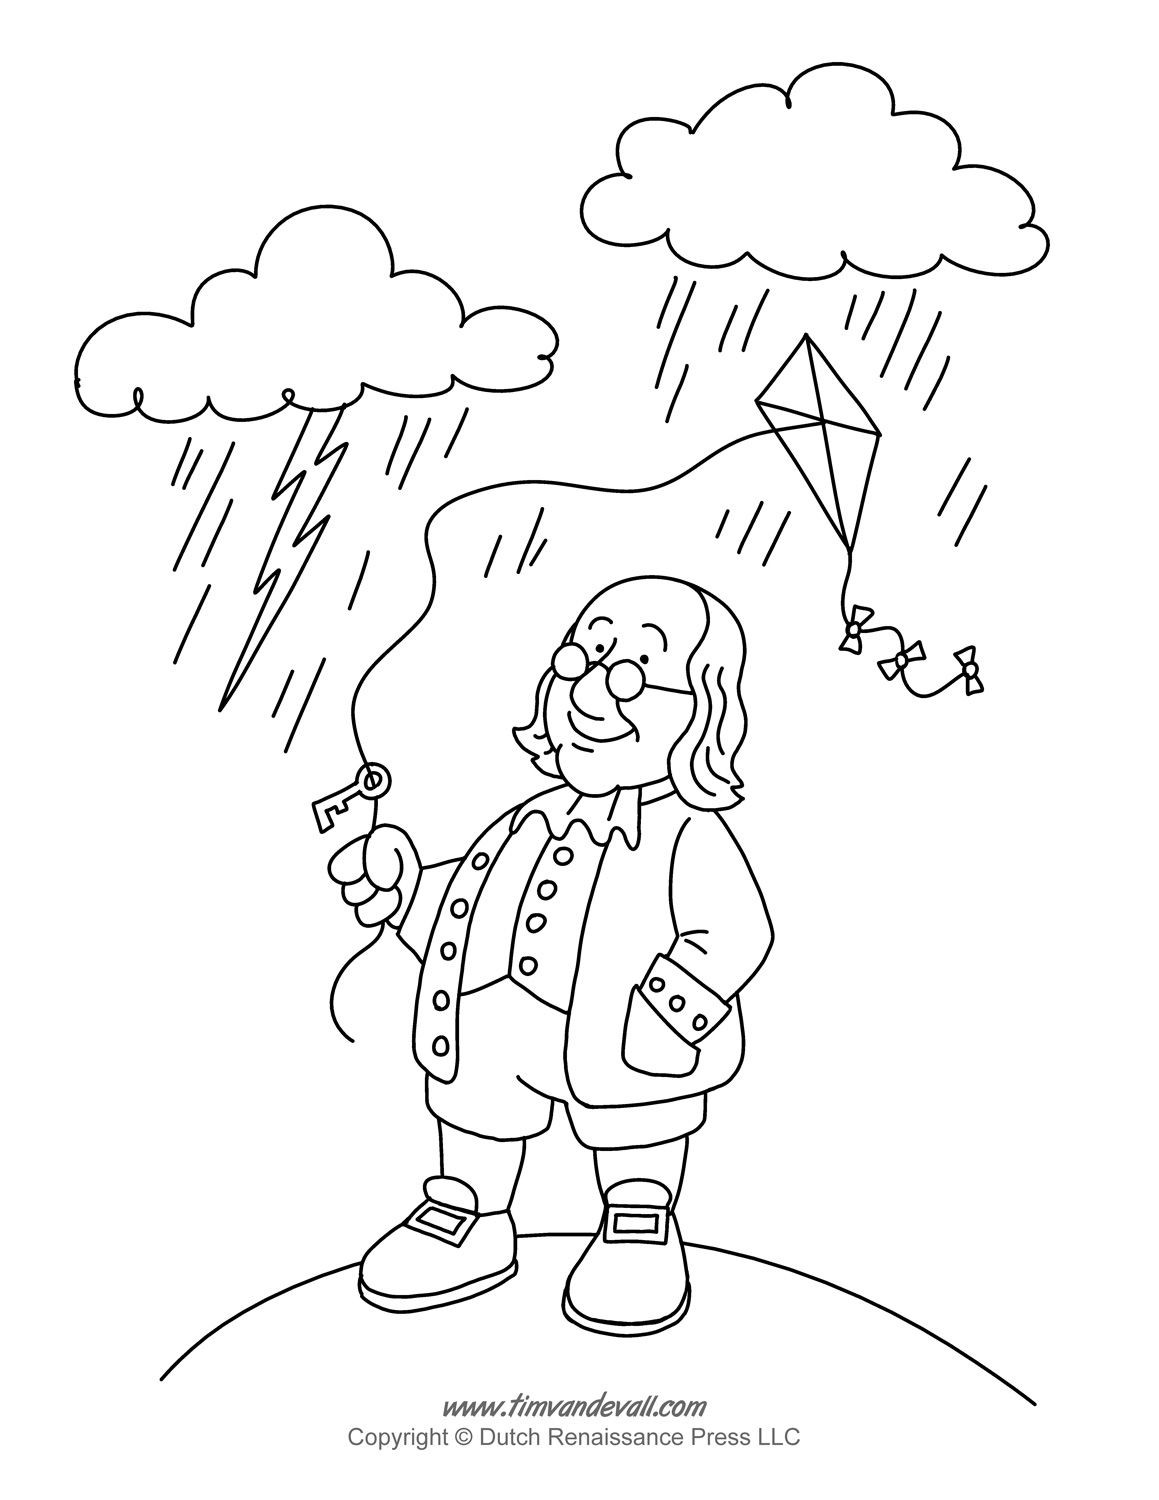 Benjamin Franklin Coloring Page | Homeschool Stuffs | Pinterest | La ...